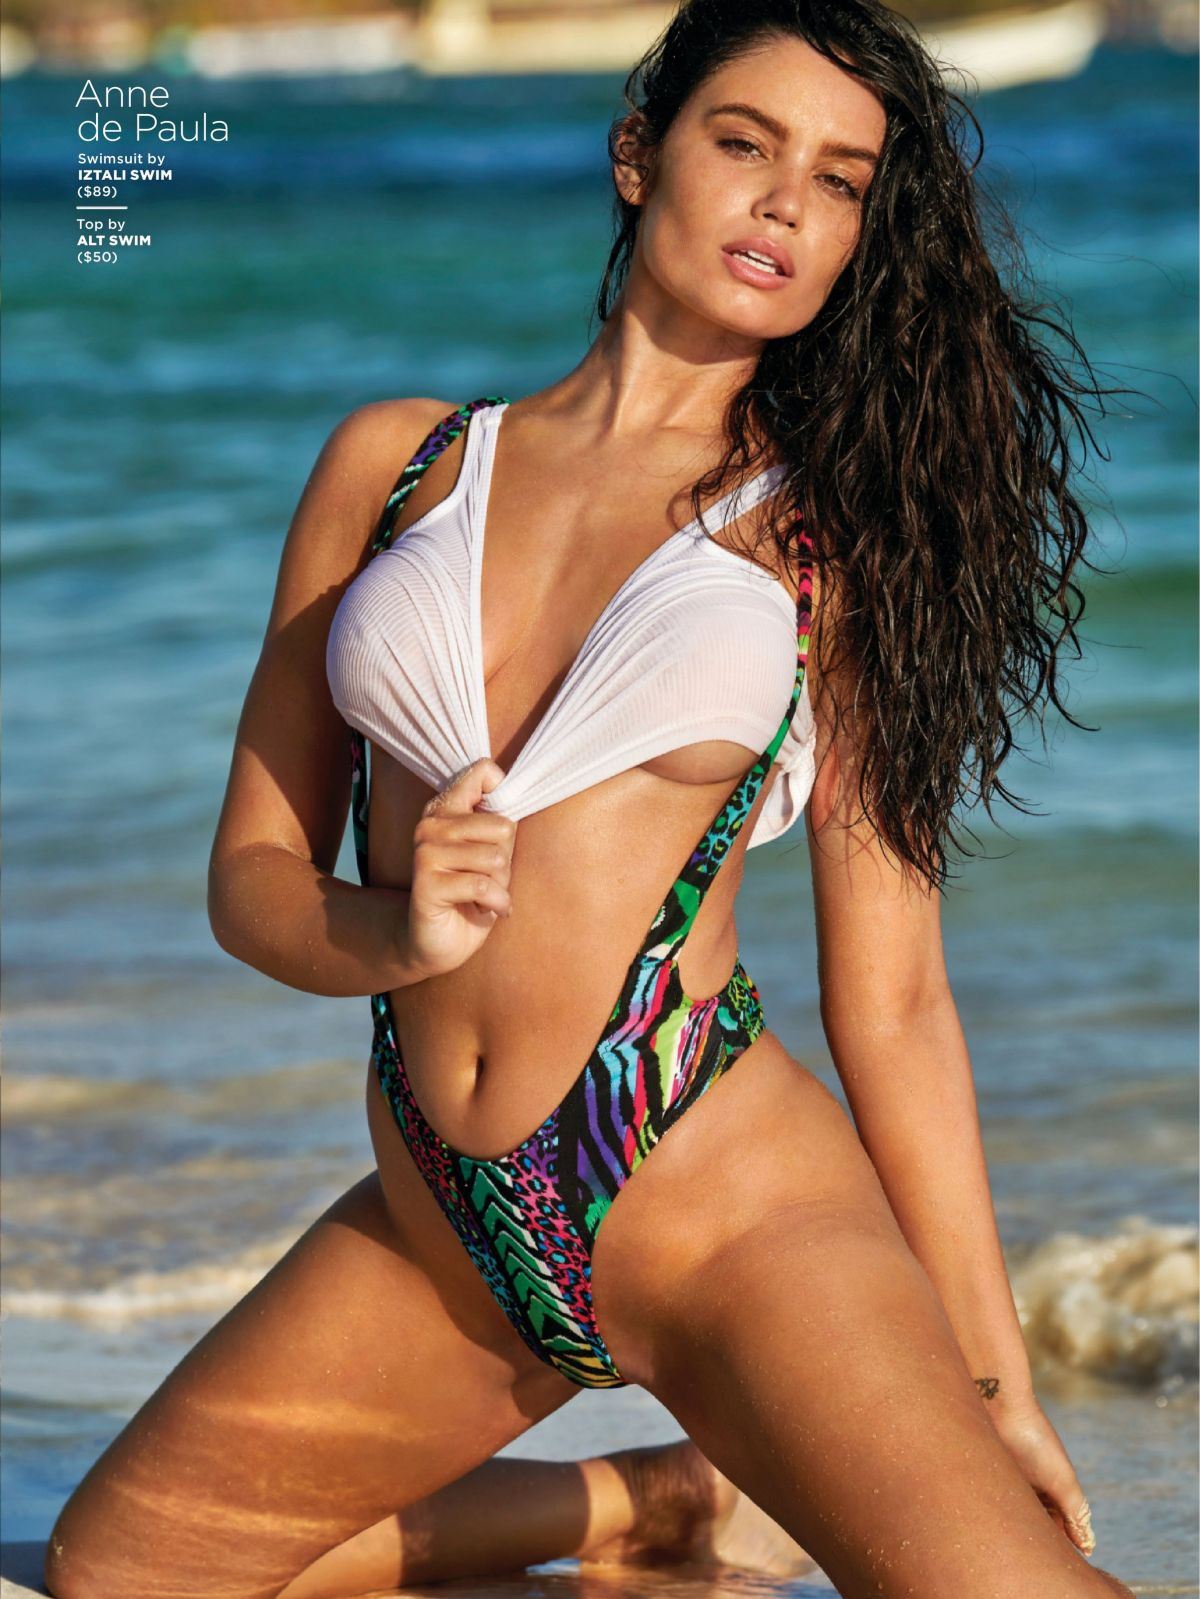 illustrated sports swimsuit paula anne si issue swim hawtcelebs sportsillustrated bellazon banks camille morgan yu kenya added